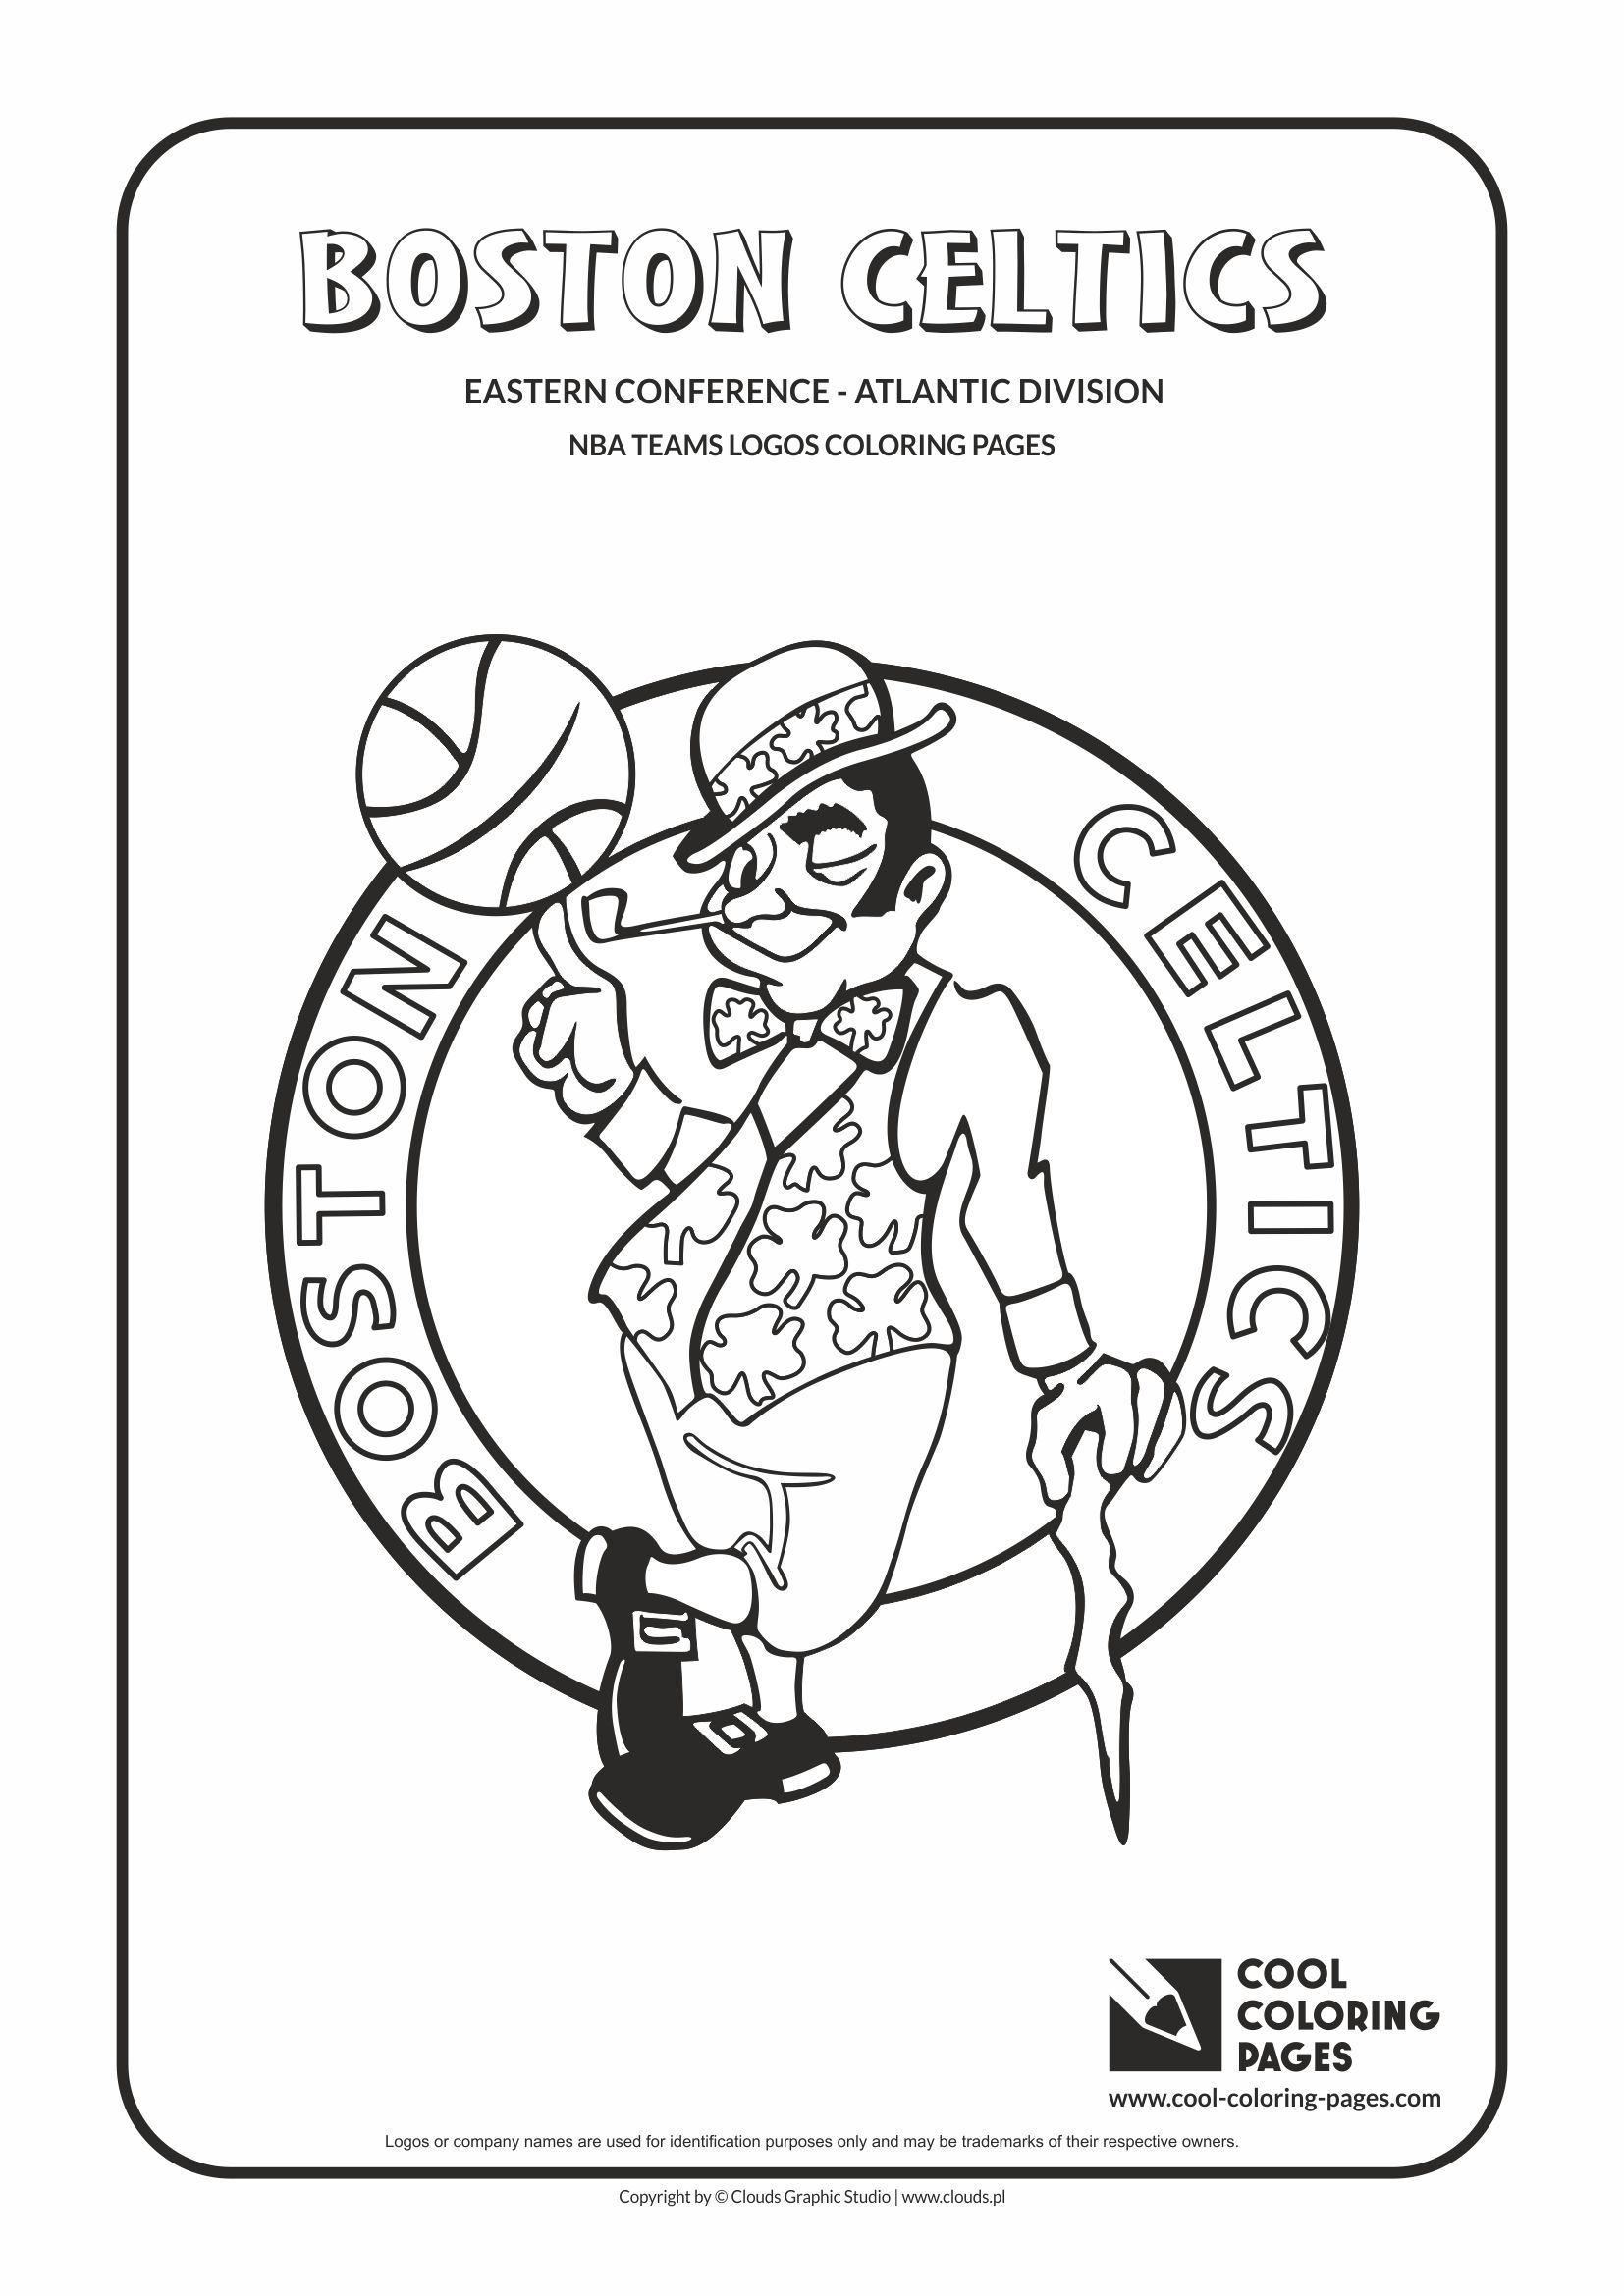 Cool Coloring Pages - NBA Teams Logos / Boston Celtics logo ...